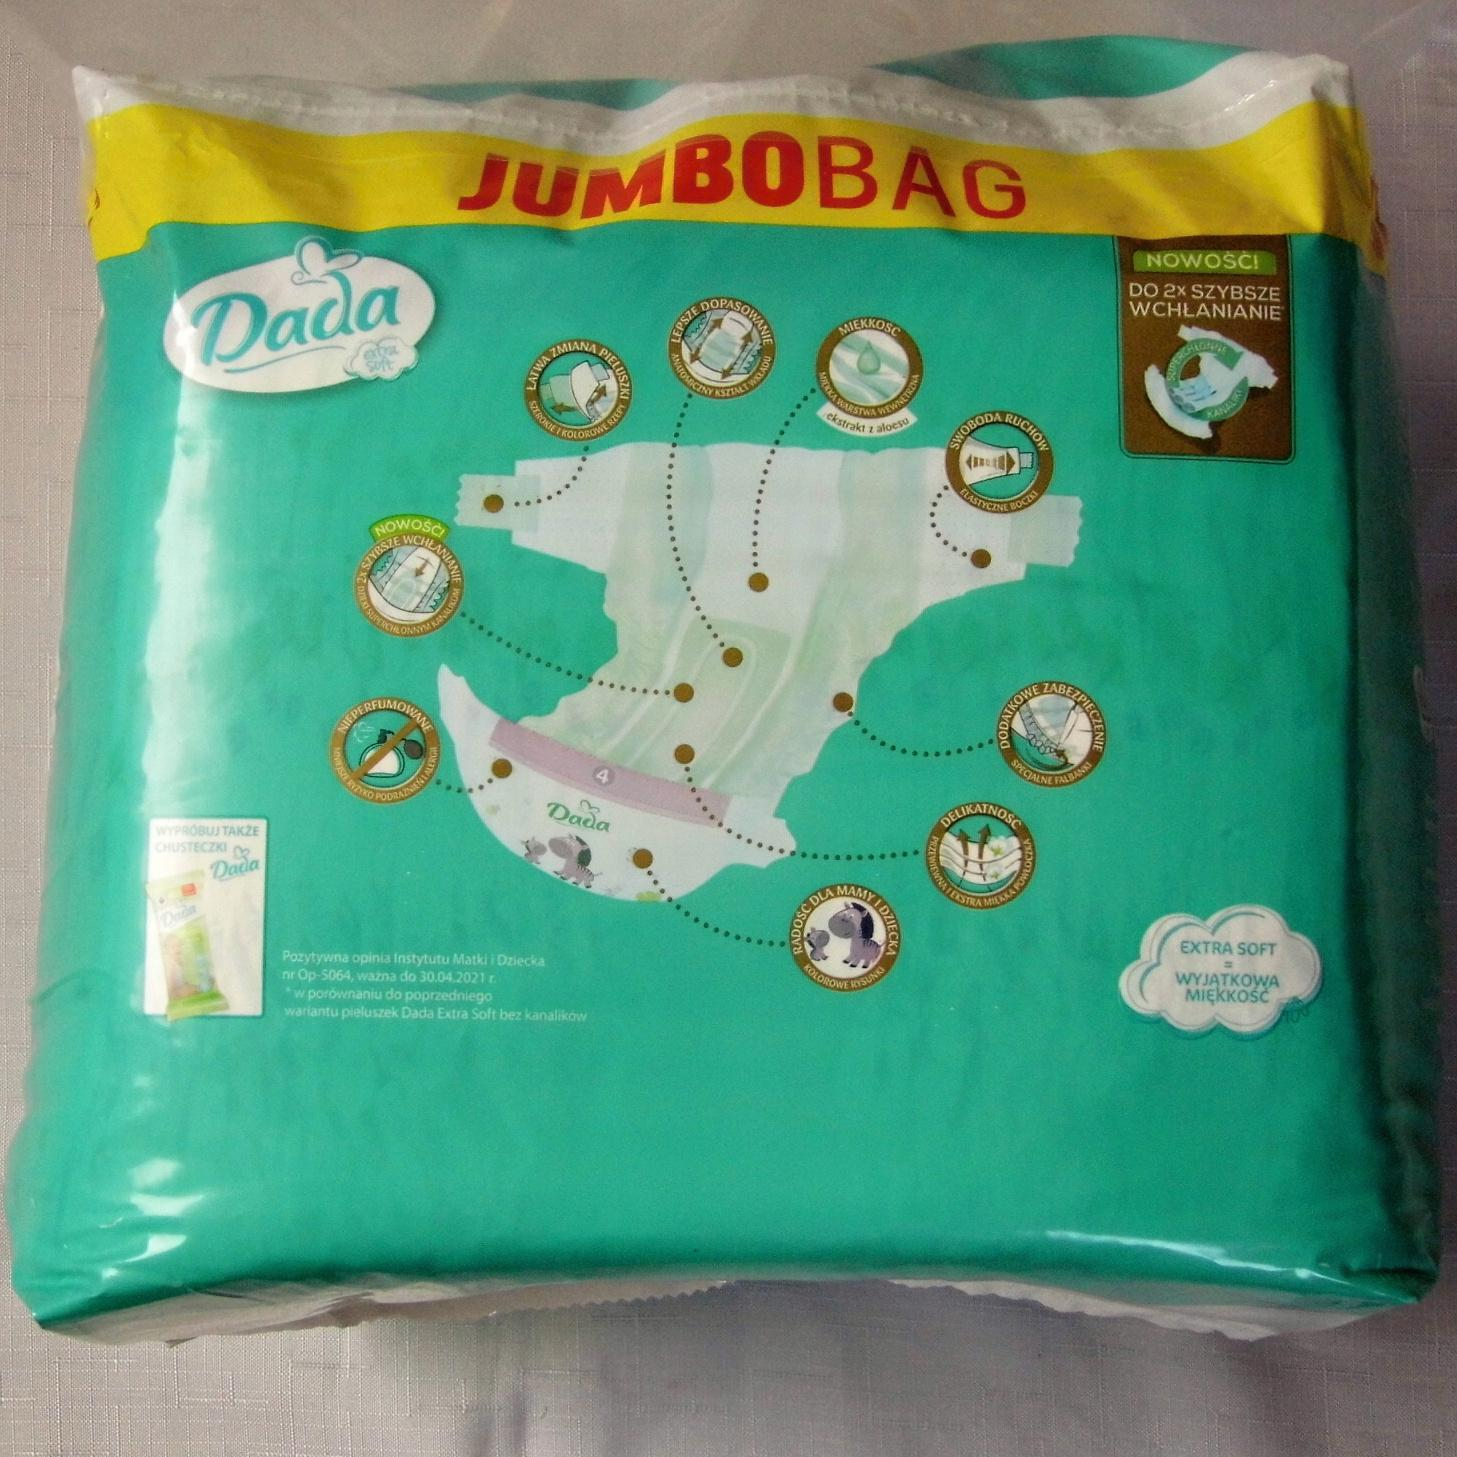 DADA EXTRA Soft JUMBO BAG VEL.5- 68 KS (15-25 KG)